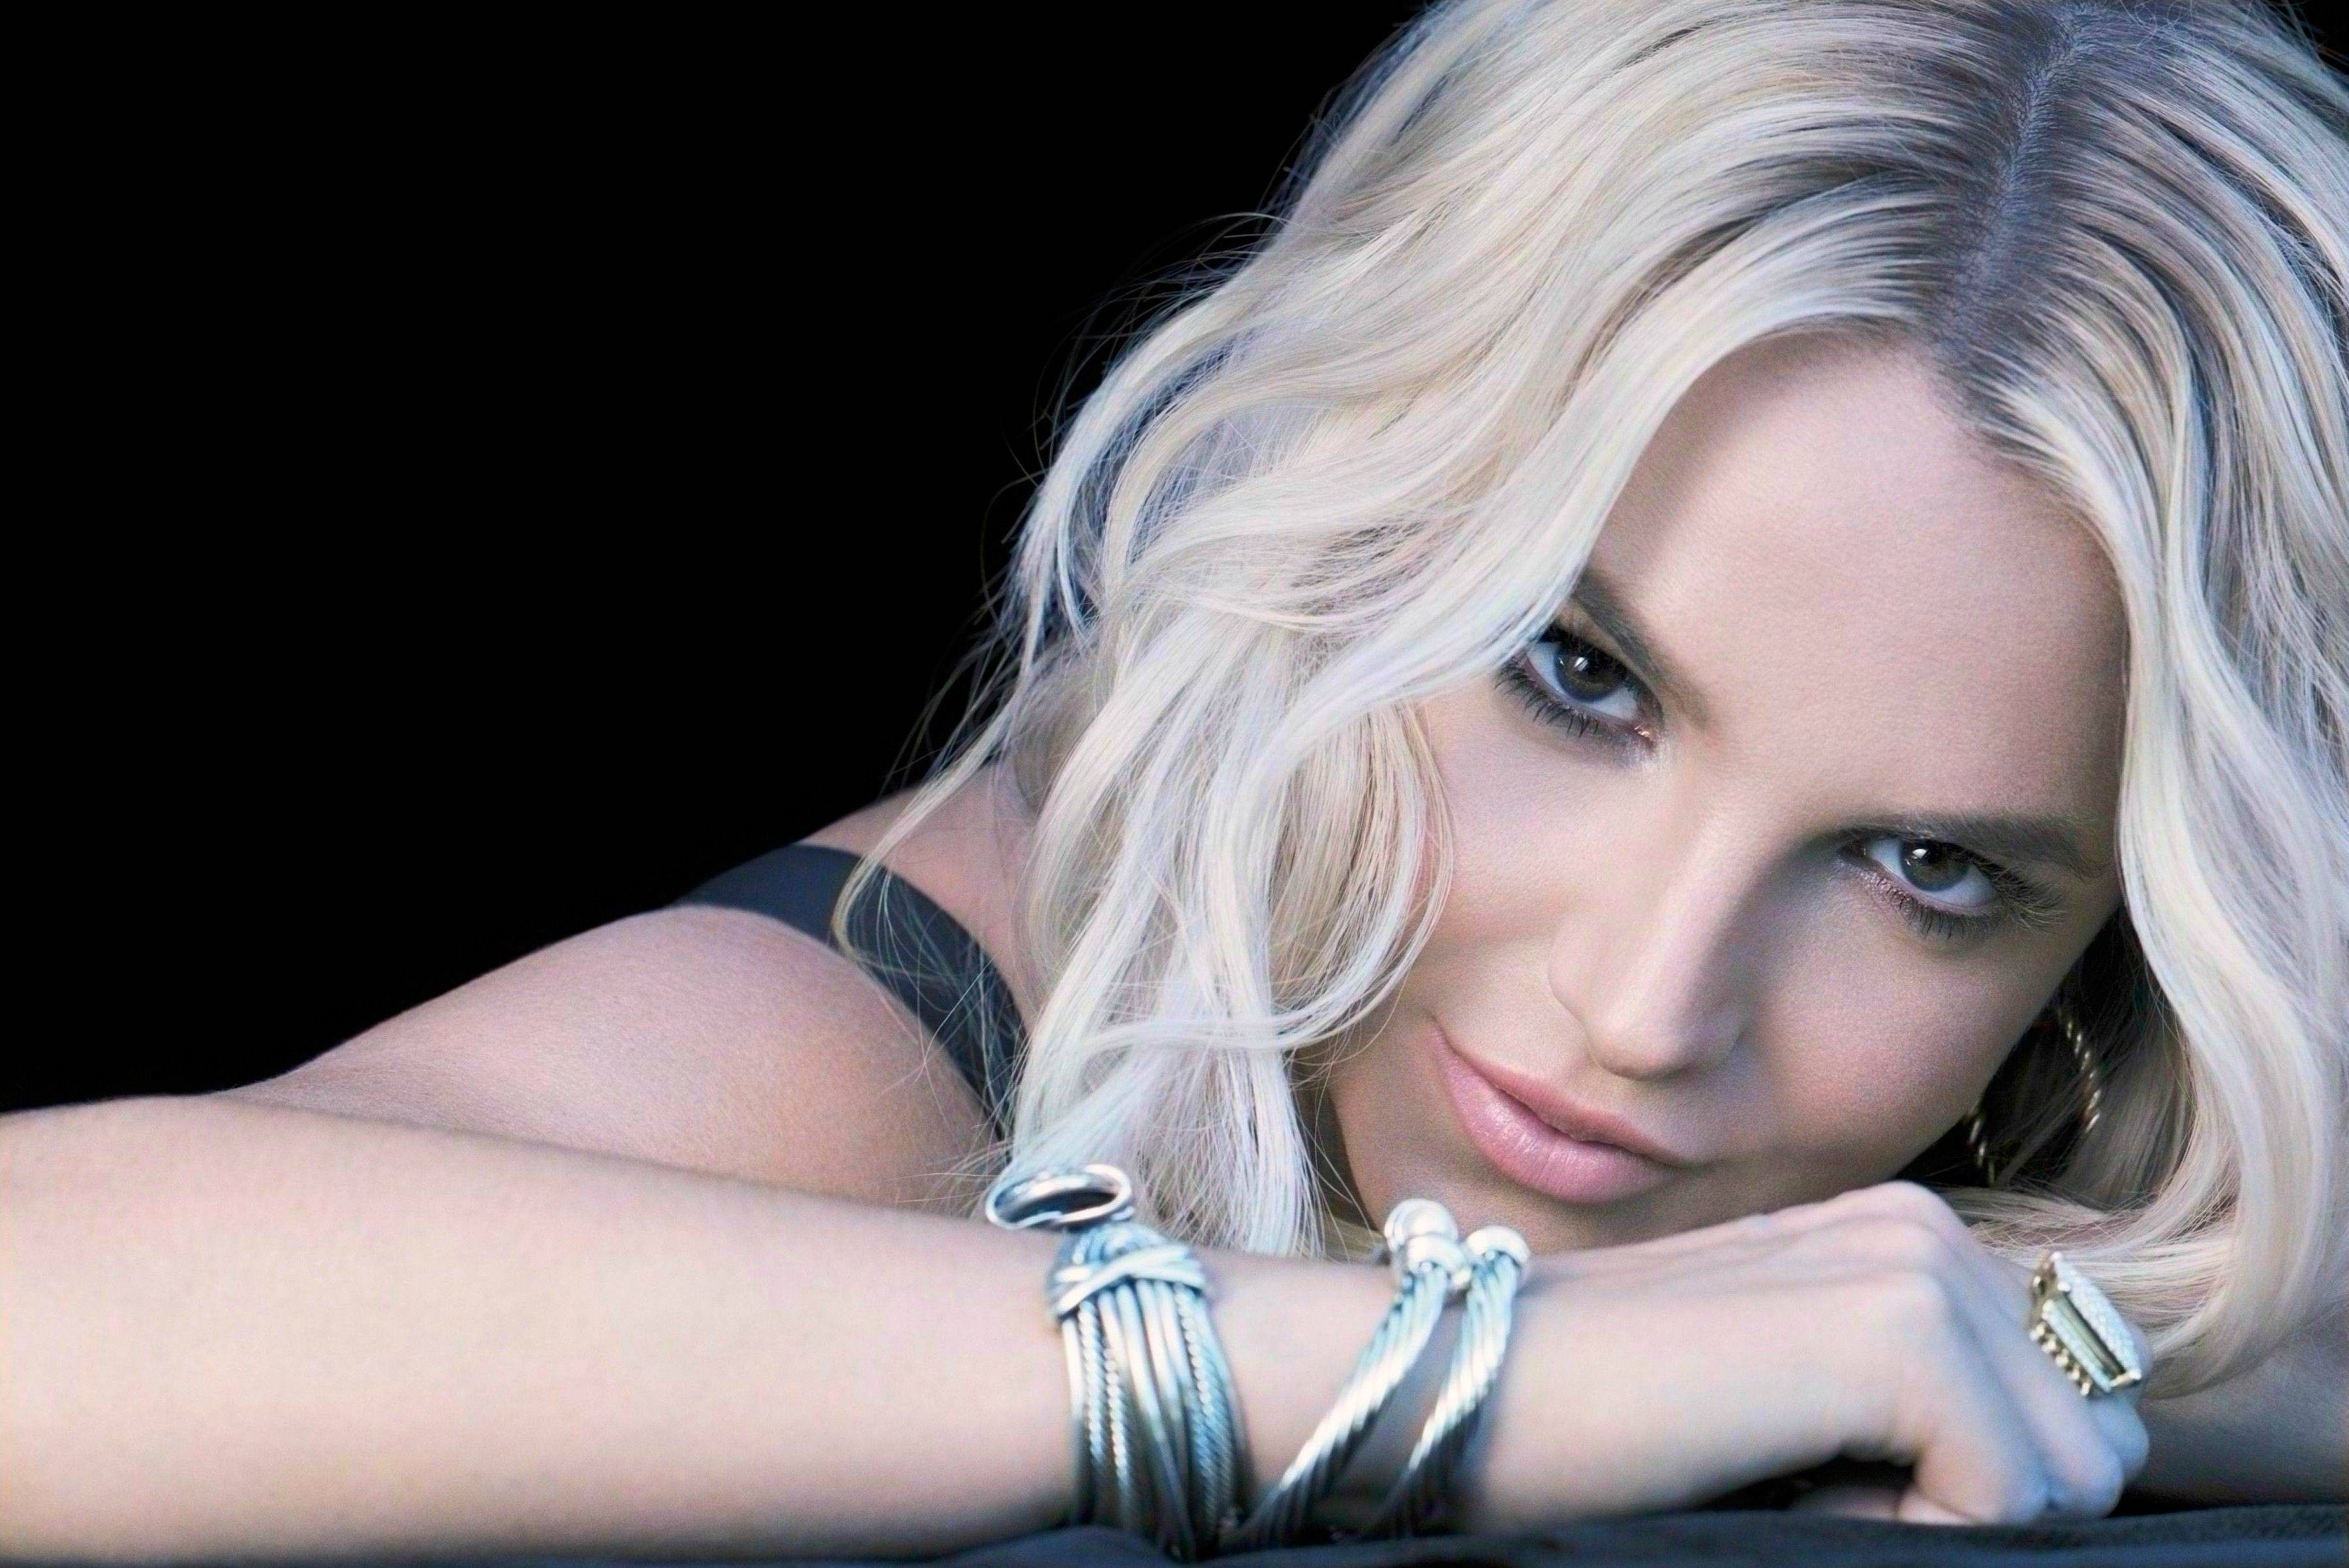 Britney Spears Images Group with items